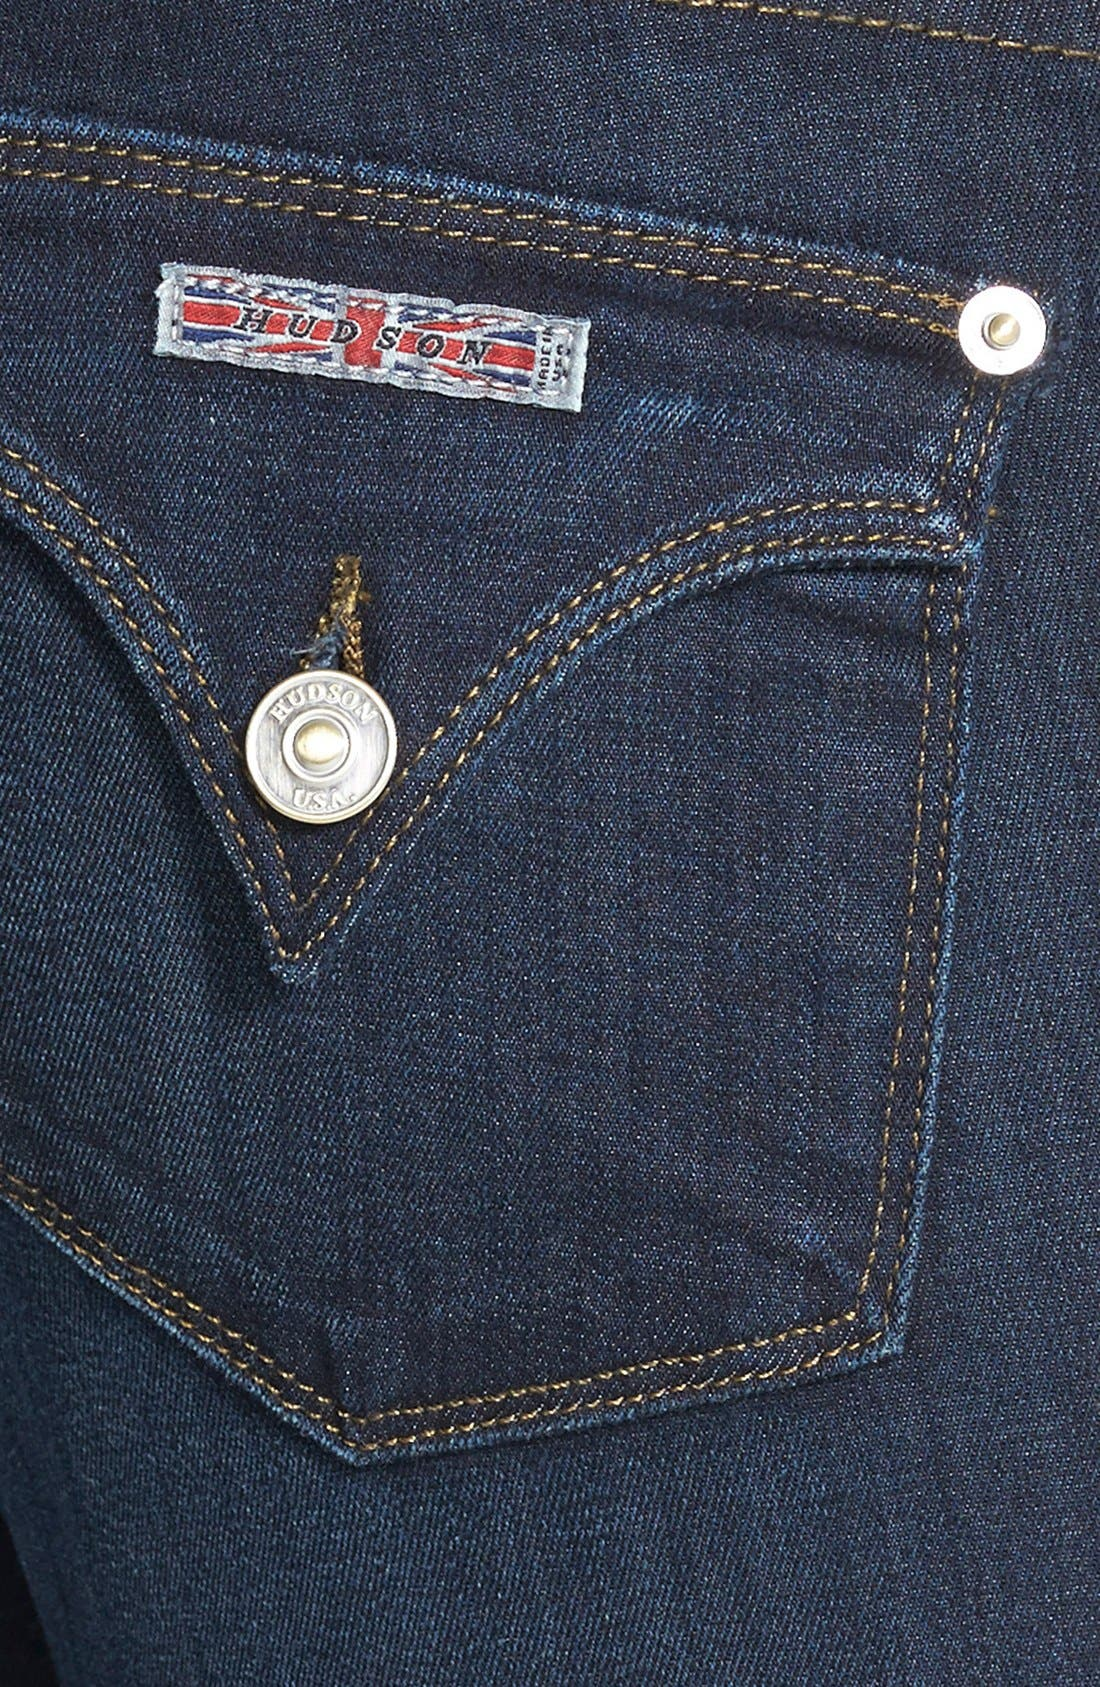 Alternate Image 3  - Hudson Jeans 'Beth' Baby Bootcut Jeans (London Calling)